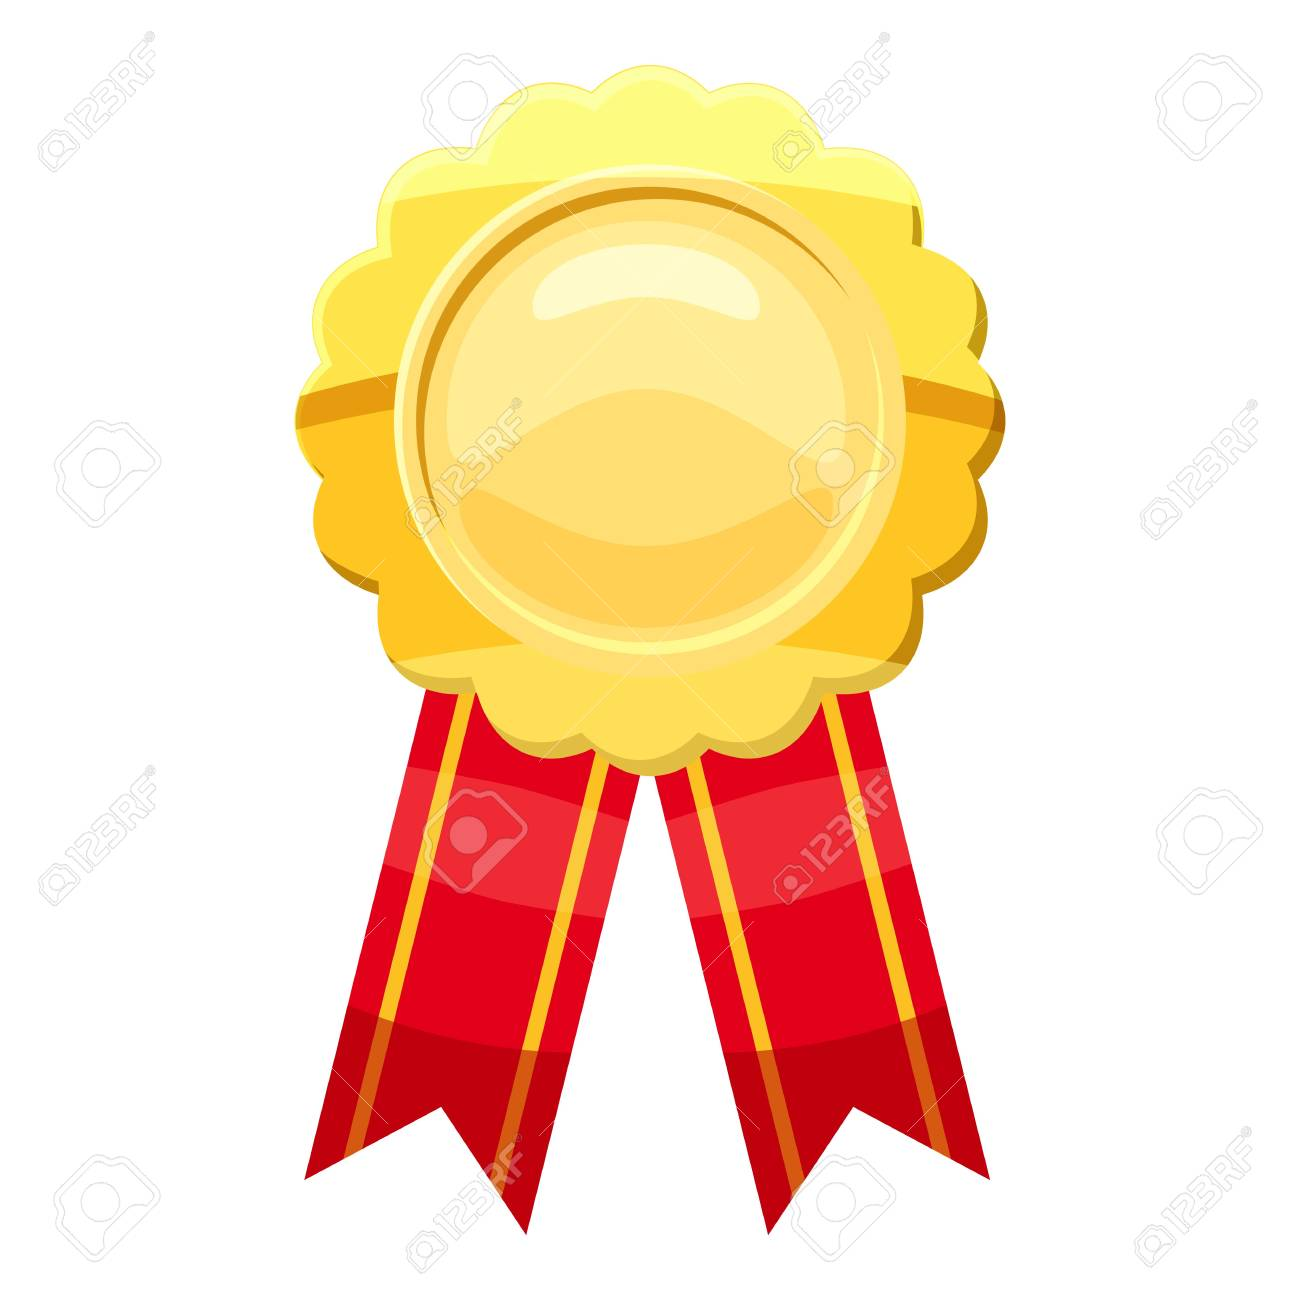 Gold award ribbon icon, cartoon style.